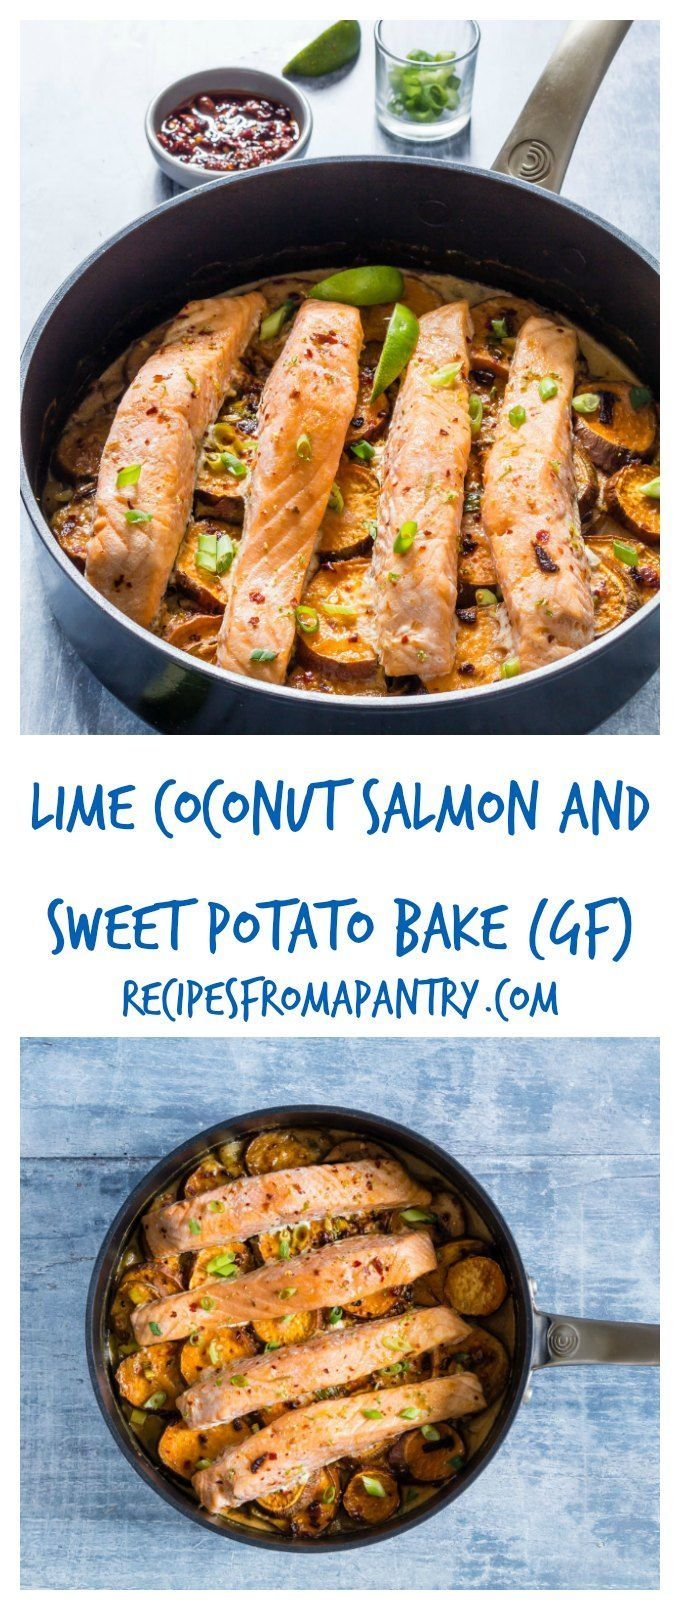 Need a quick easy weeknight dinner - then try this coconut lime, sweet potato and salmon bake (gluten-free). recipesfromapantry.com